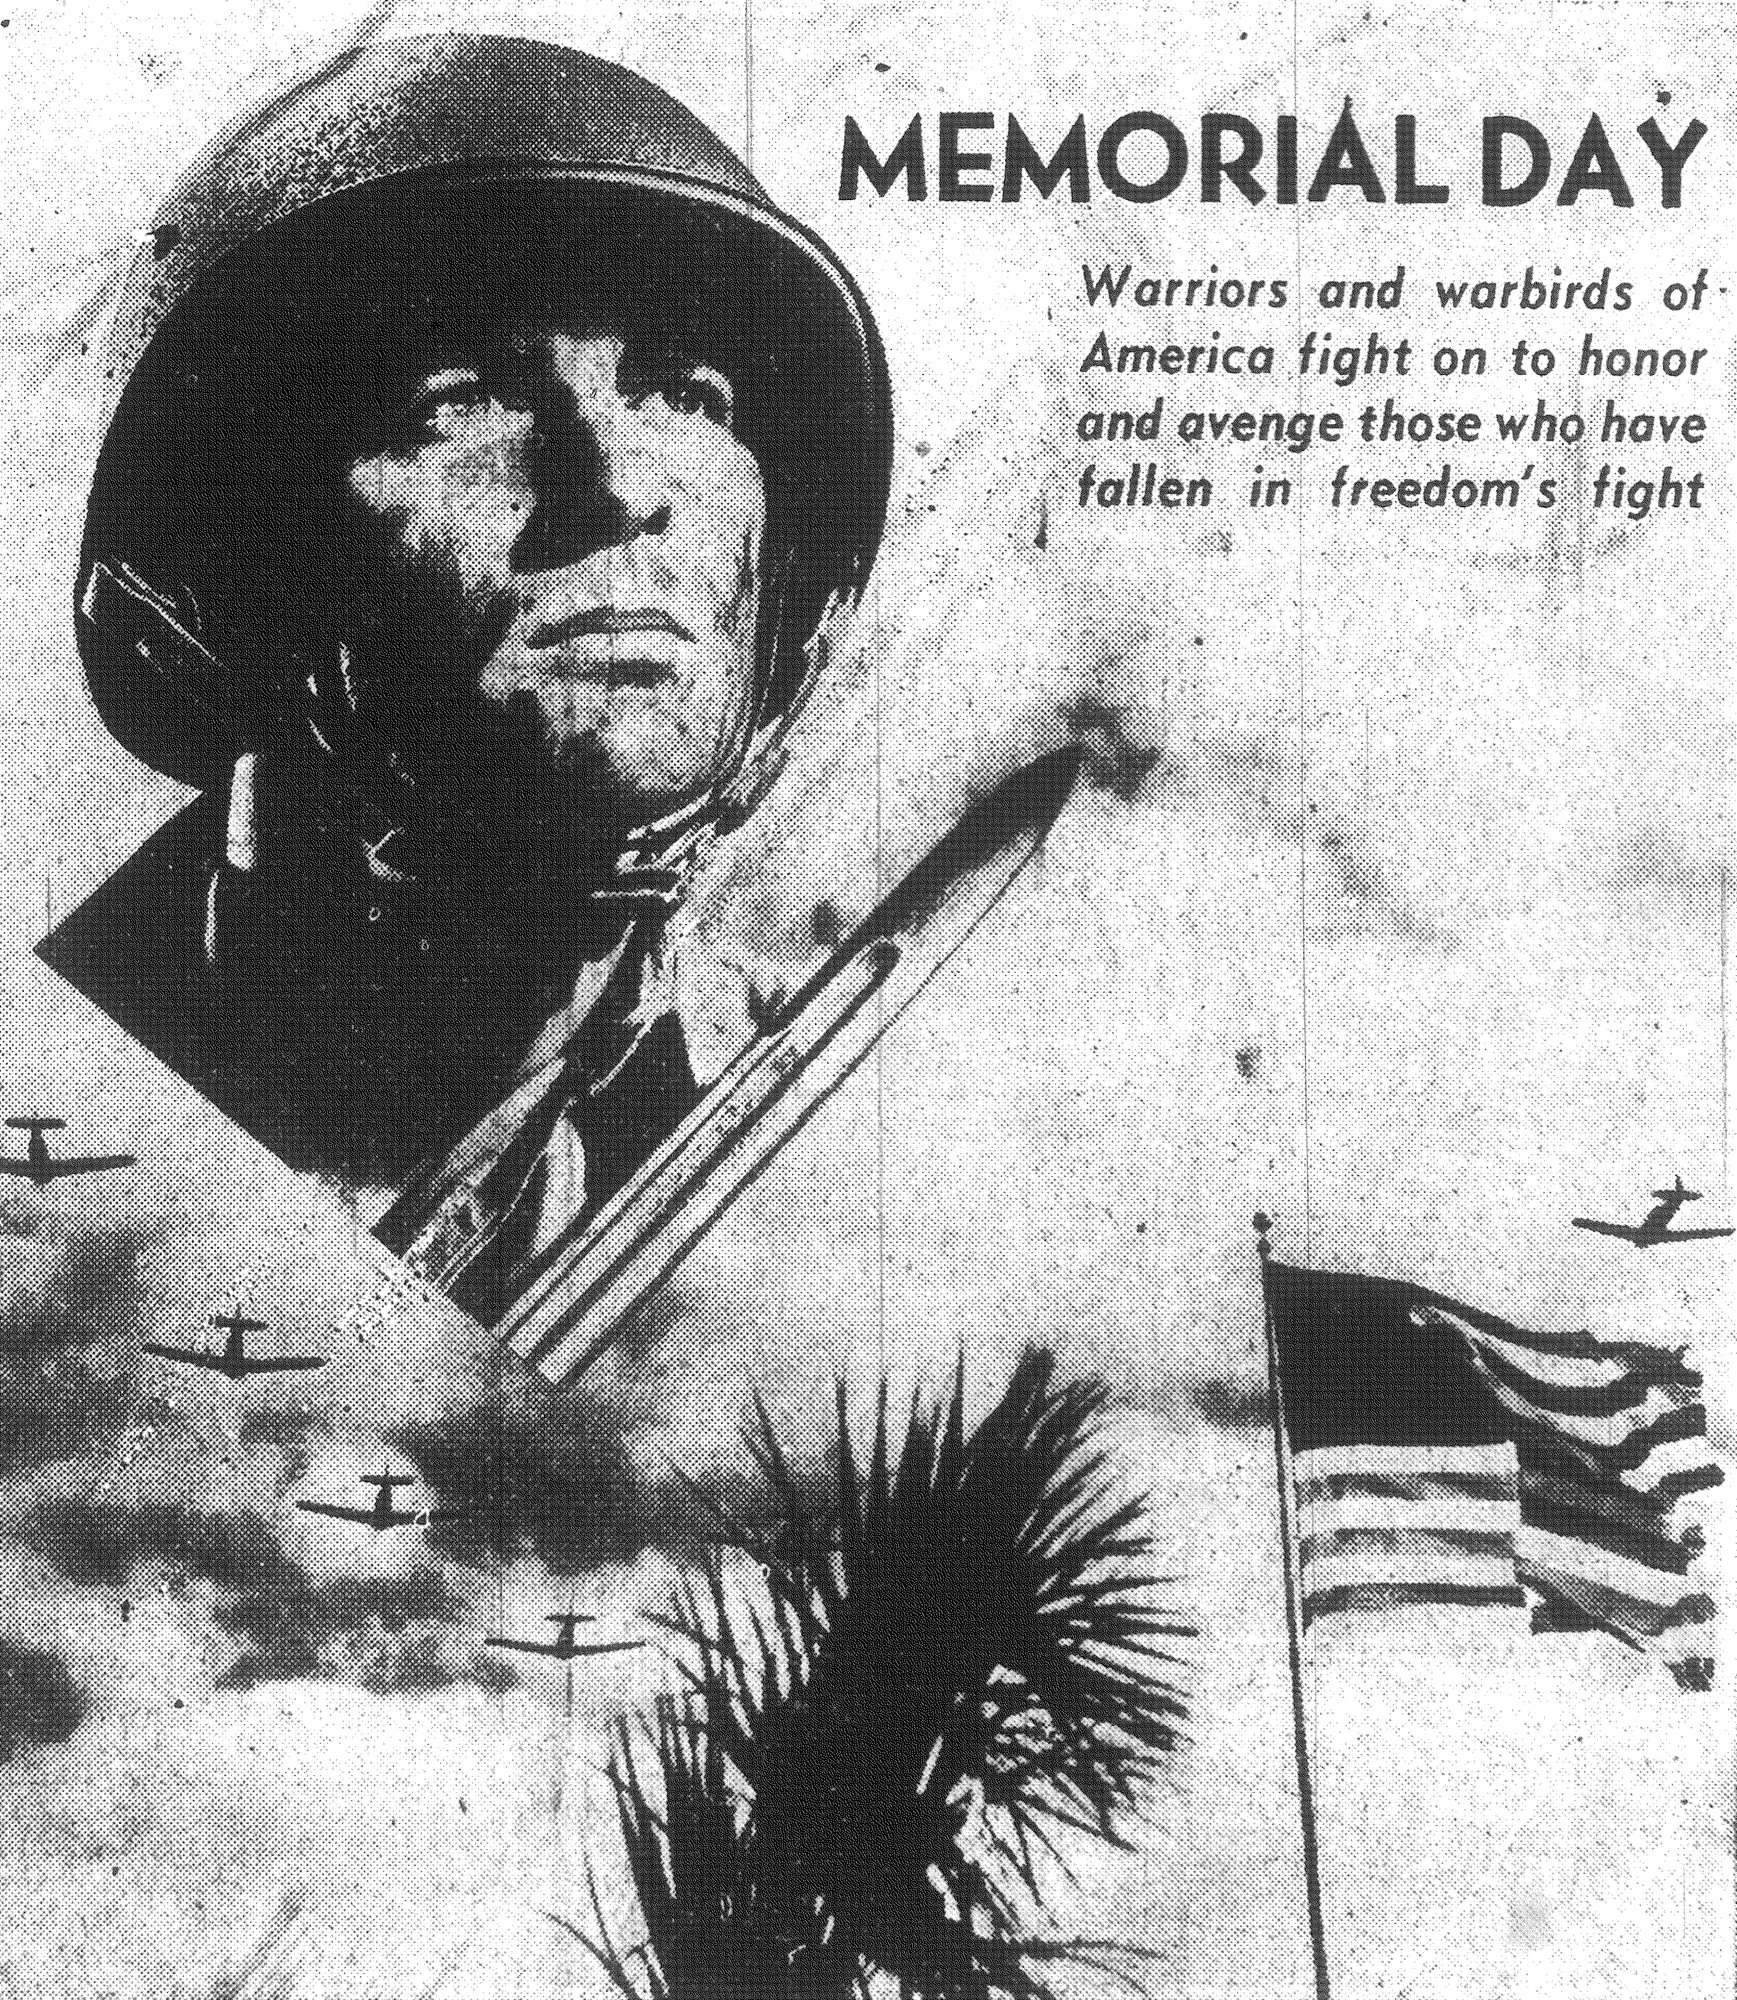 This poster appeared in 1943 in The Sumter Item honoring those who have made the ultimate sacrifice for their country.